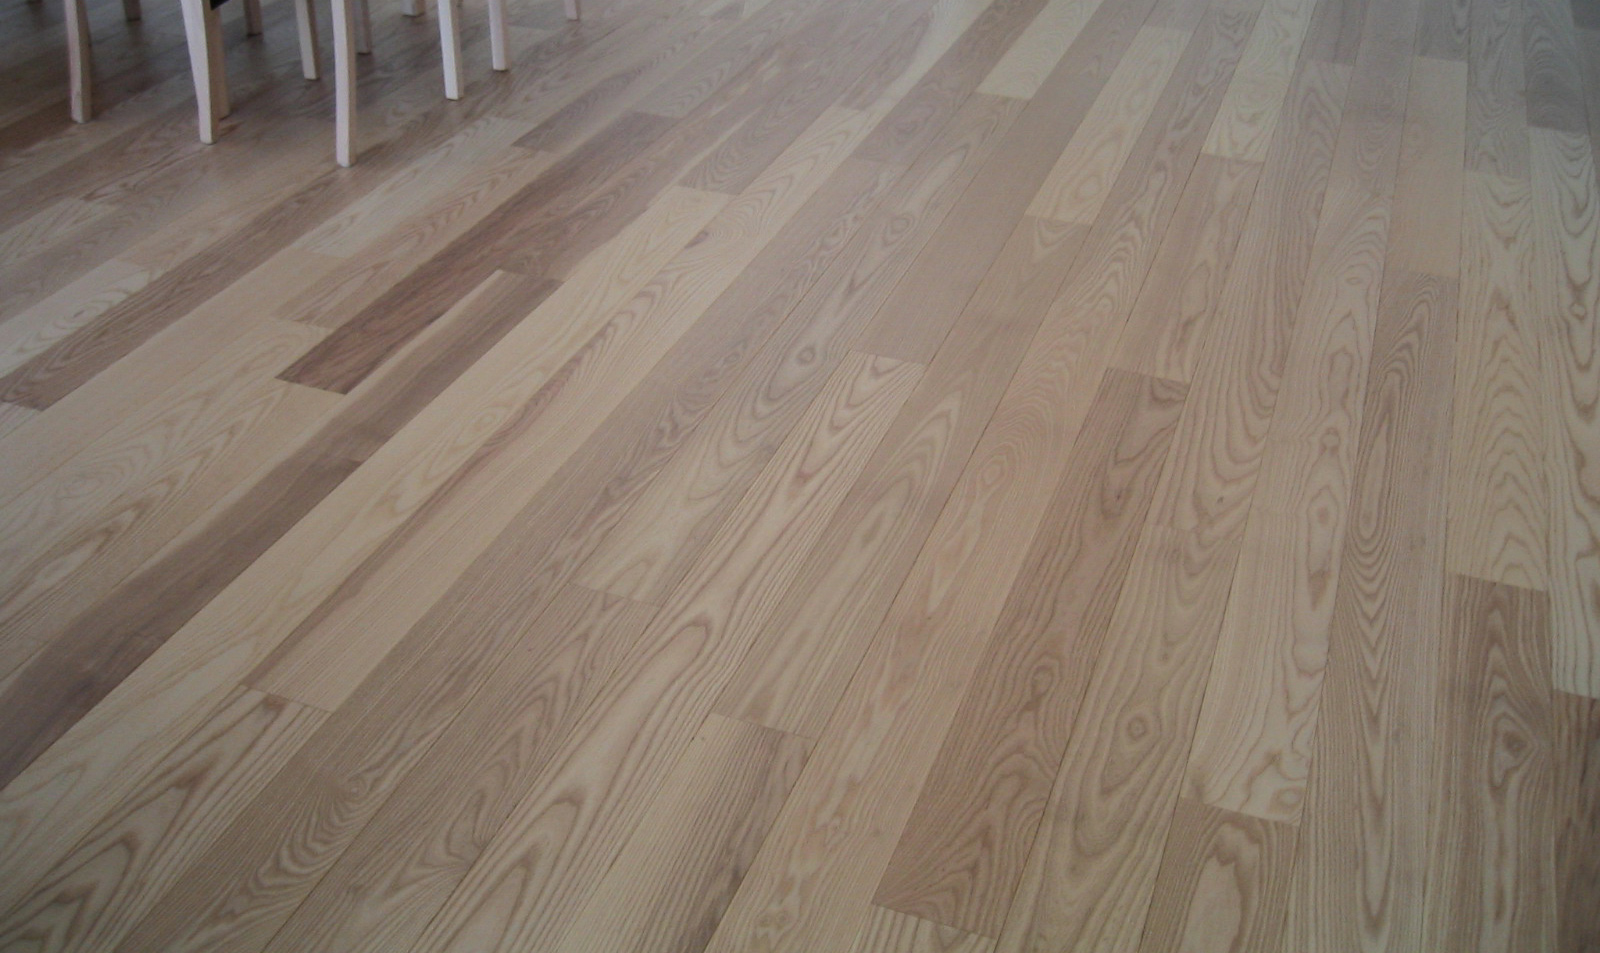 Ash flooring floors doors interior design for Ash hardwood flooring